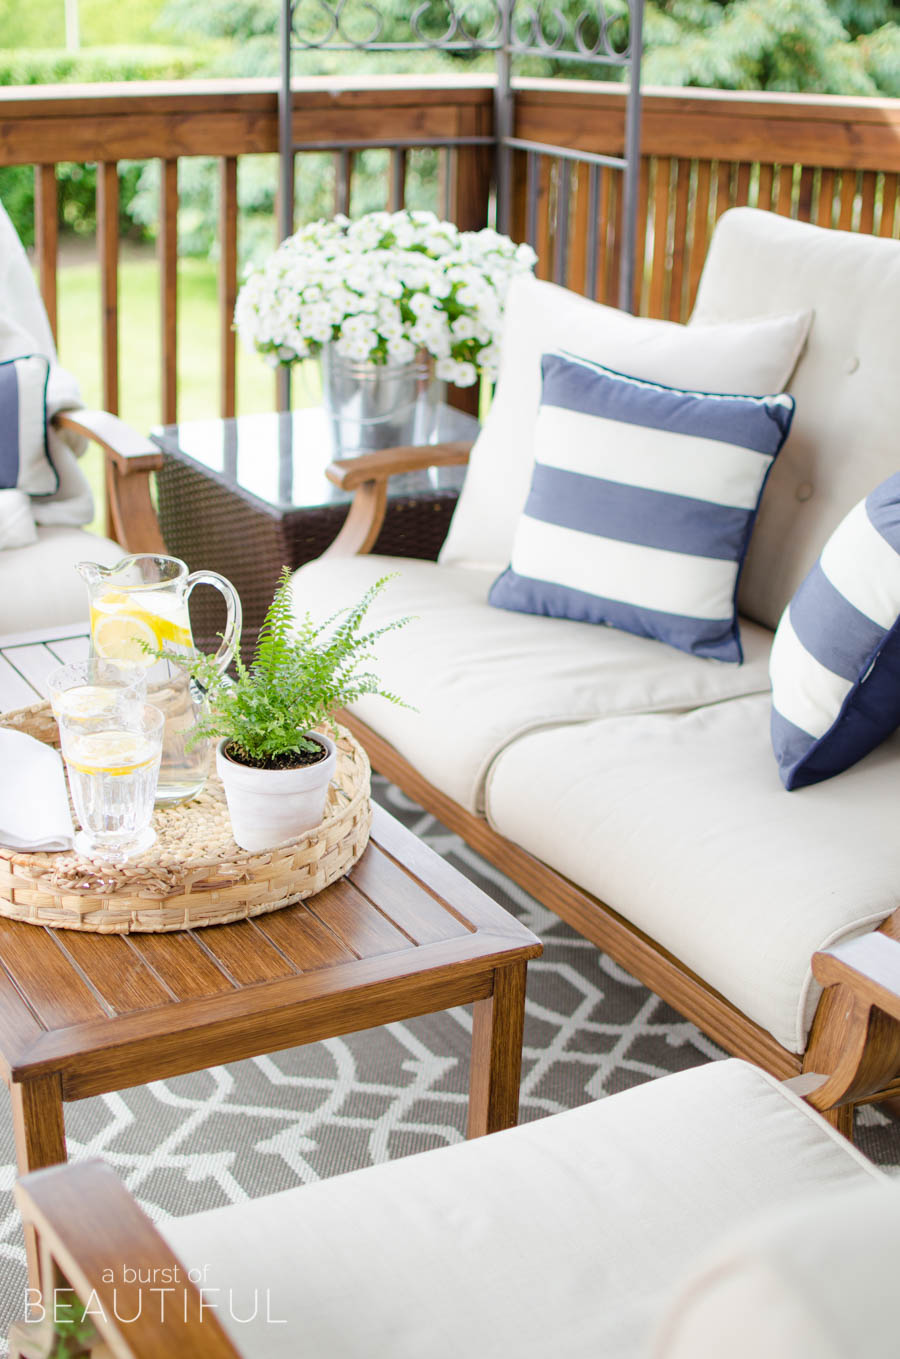 Make The Most Of Your Patio, Deck Or Balcony With These Easy Tips For  Creating